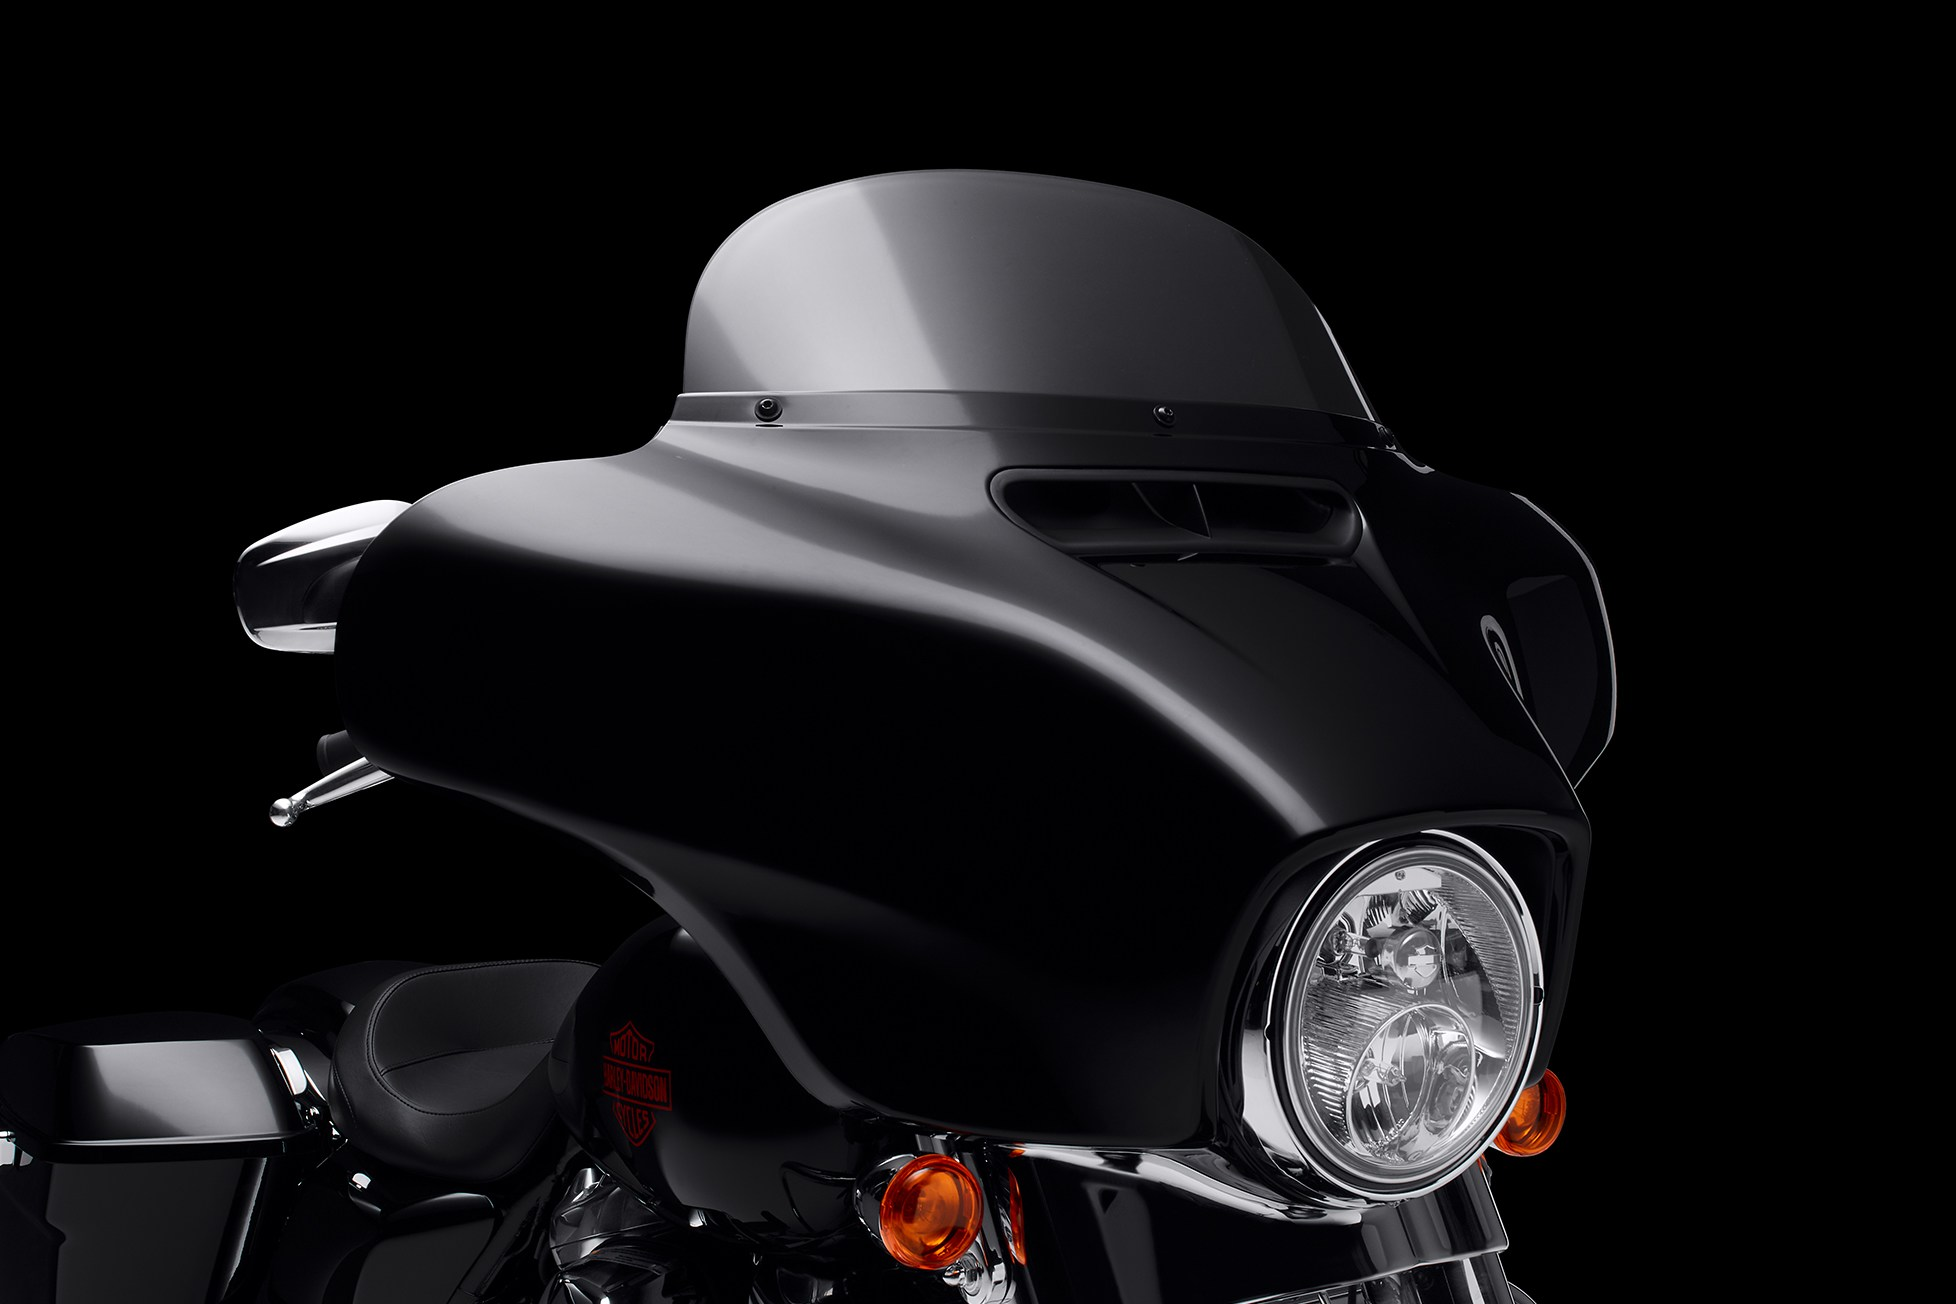 Batwing Fairing & Mid-Height Windshield